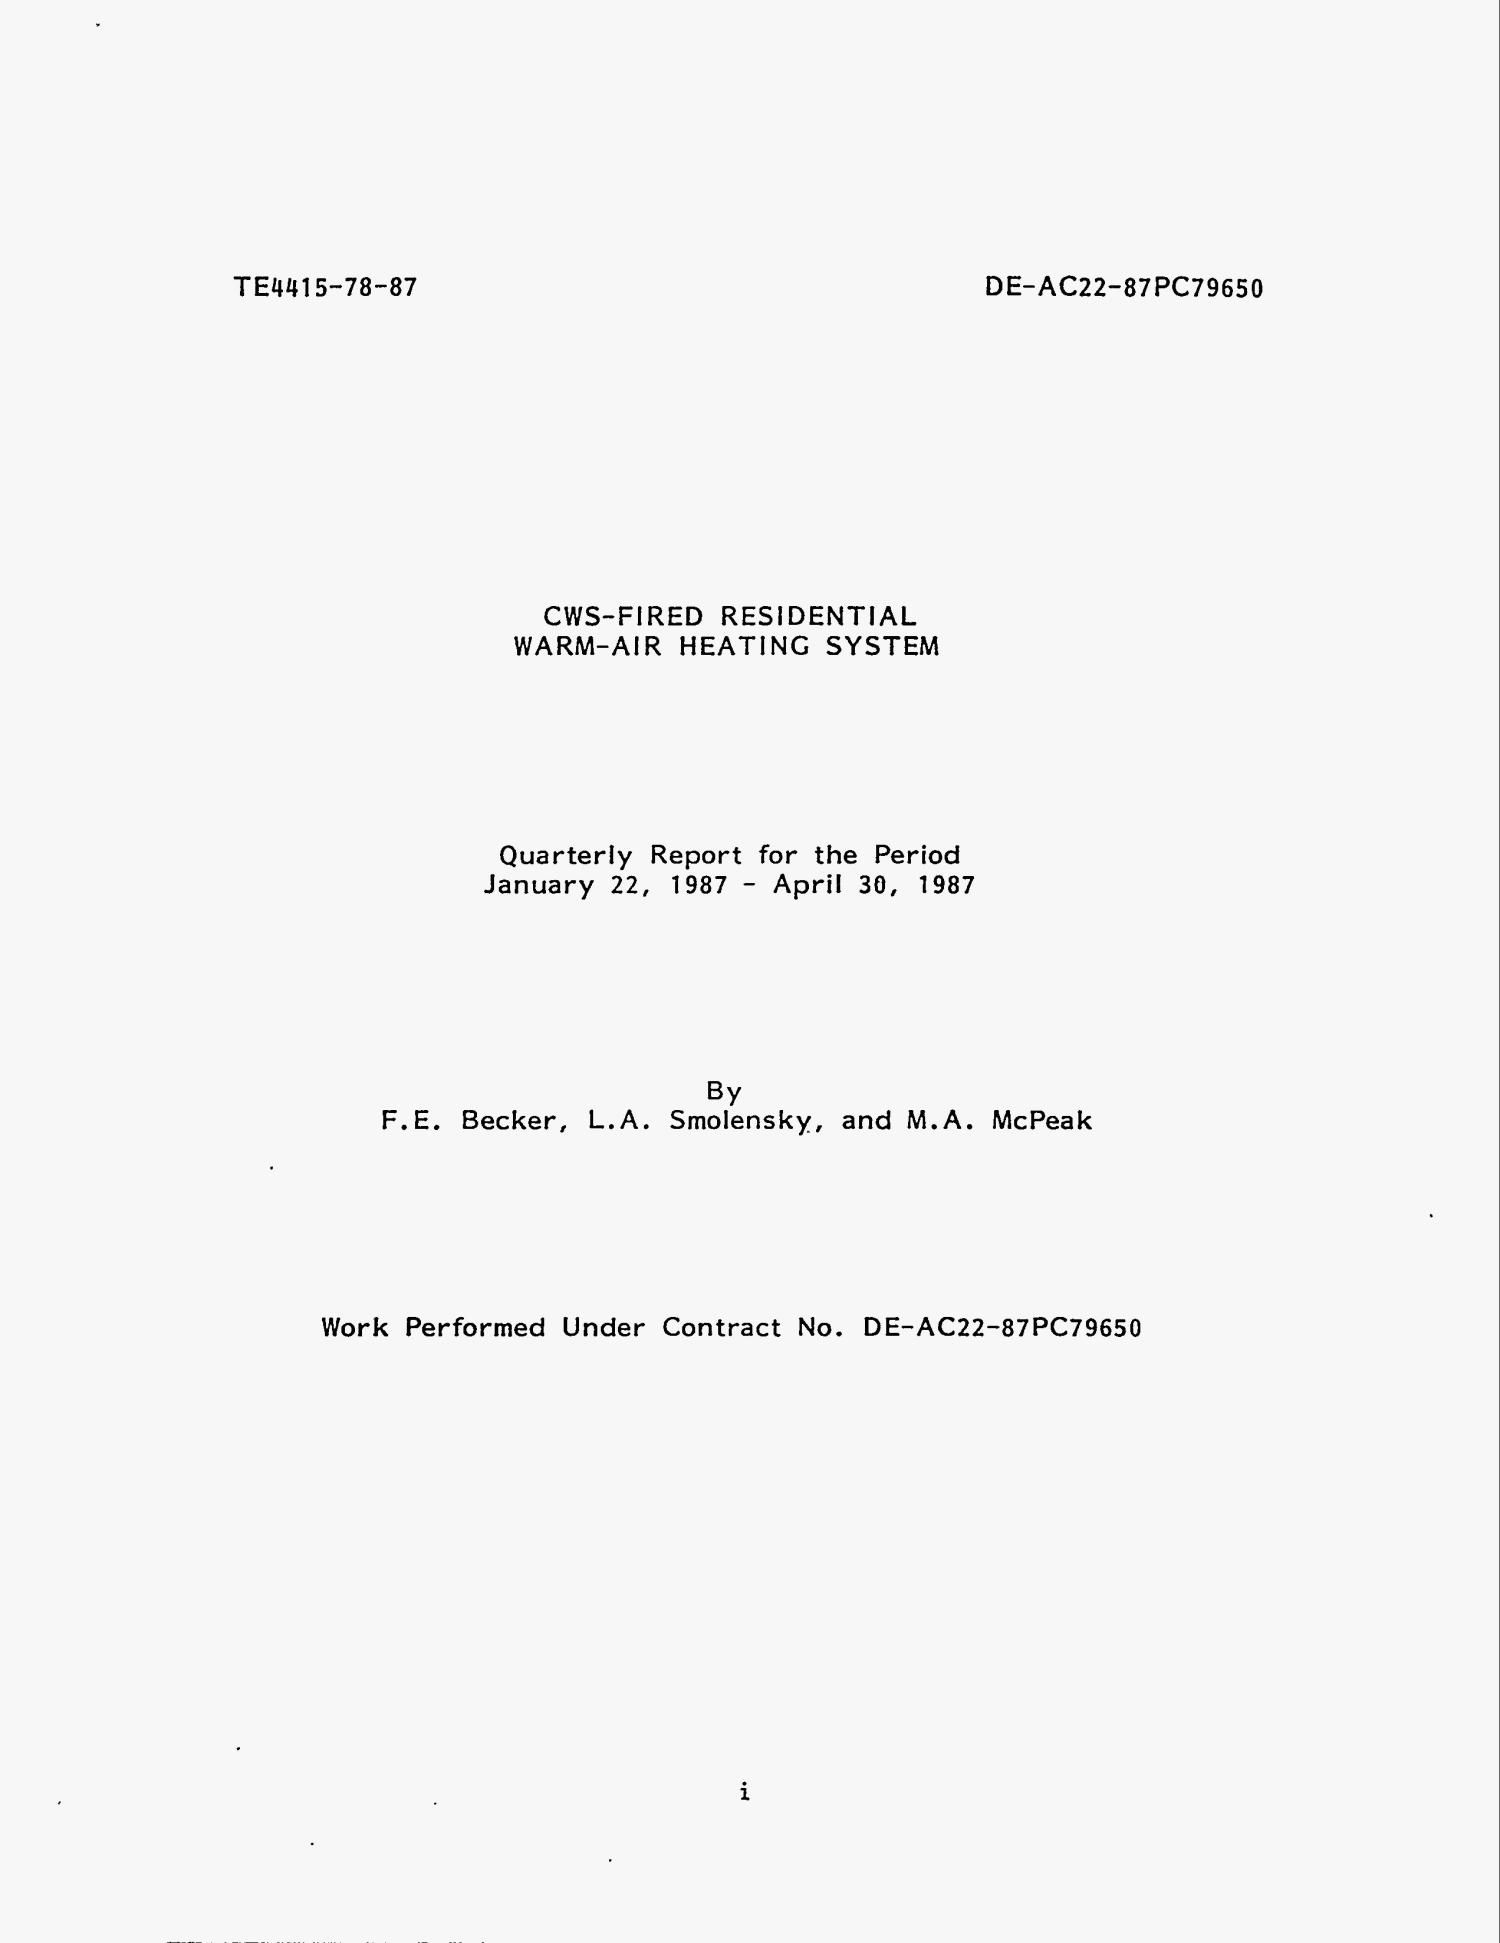 CWS-fired residential warm-air heating system. Quarterly report, January 22, 1987--April 30, 1987                                                                                                      [Sequence #]: 4 of 57